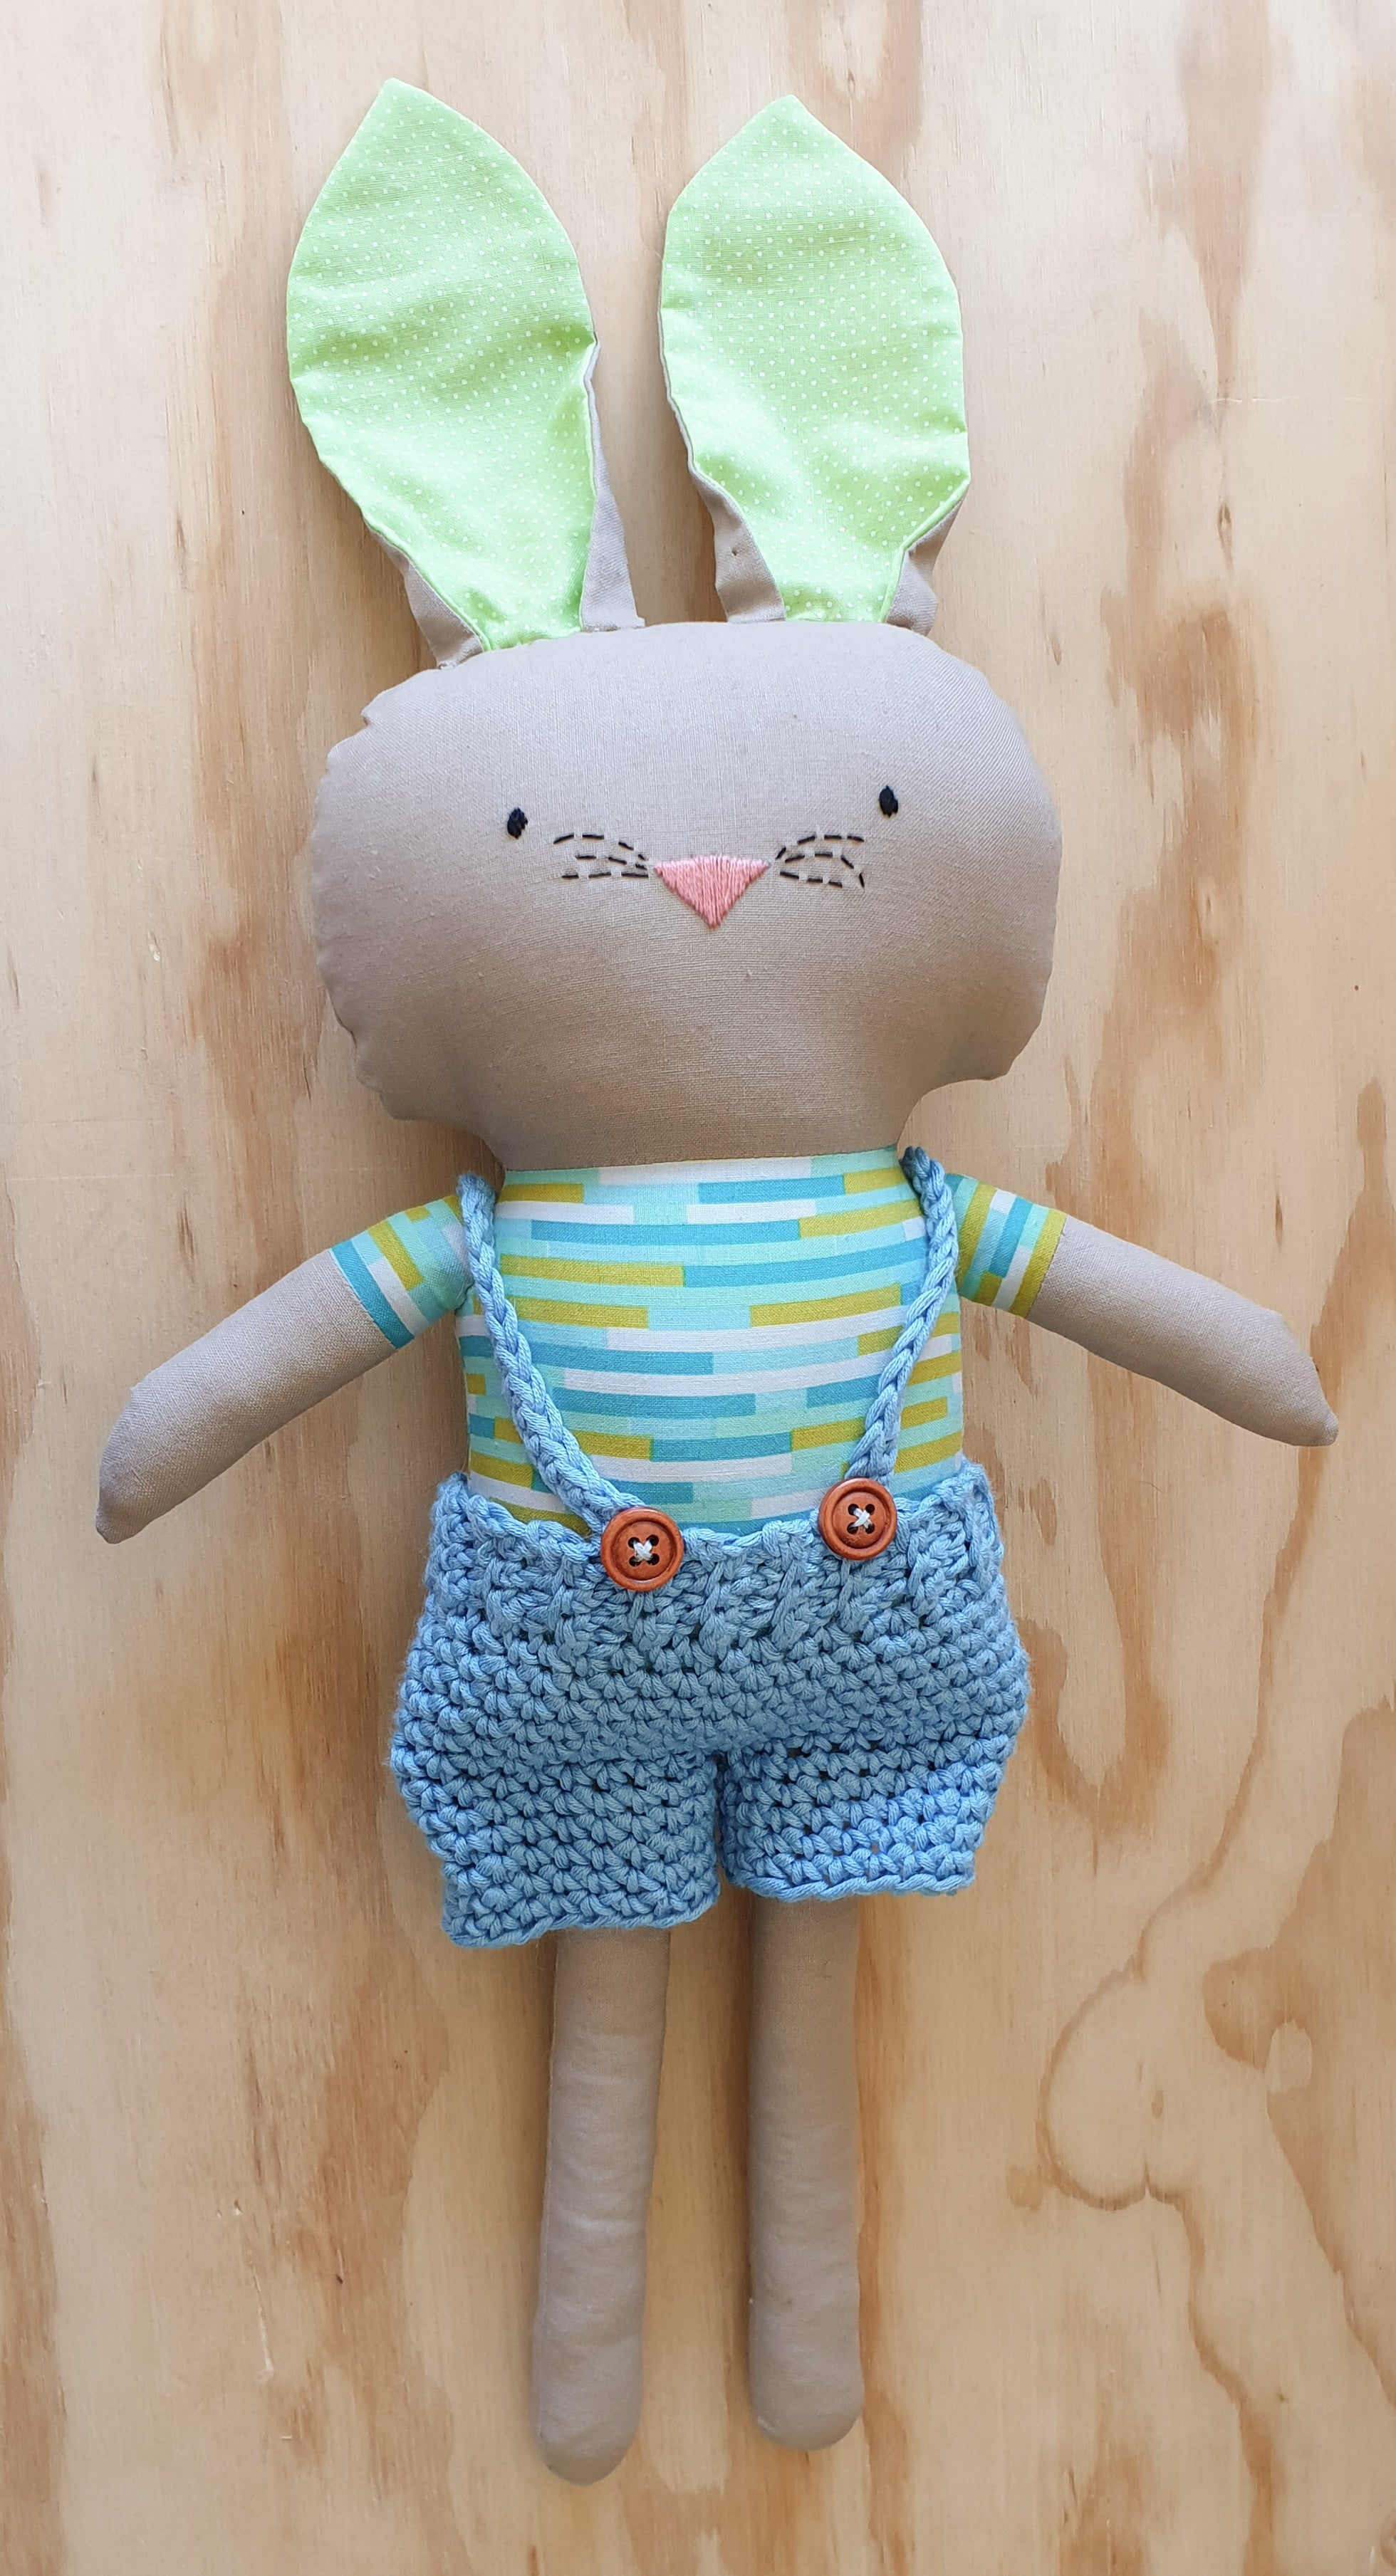 Bunny ragdoll - Stuffed animal - Cloth rabbit